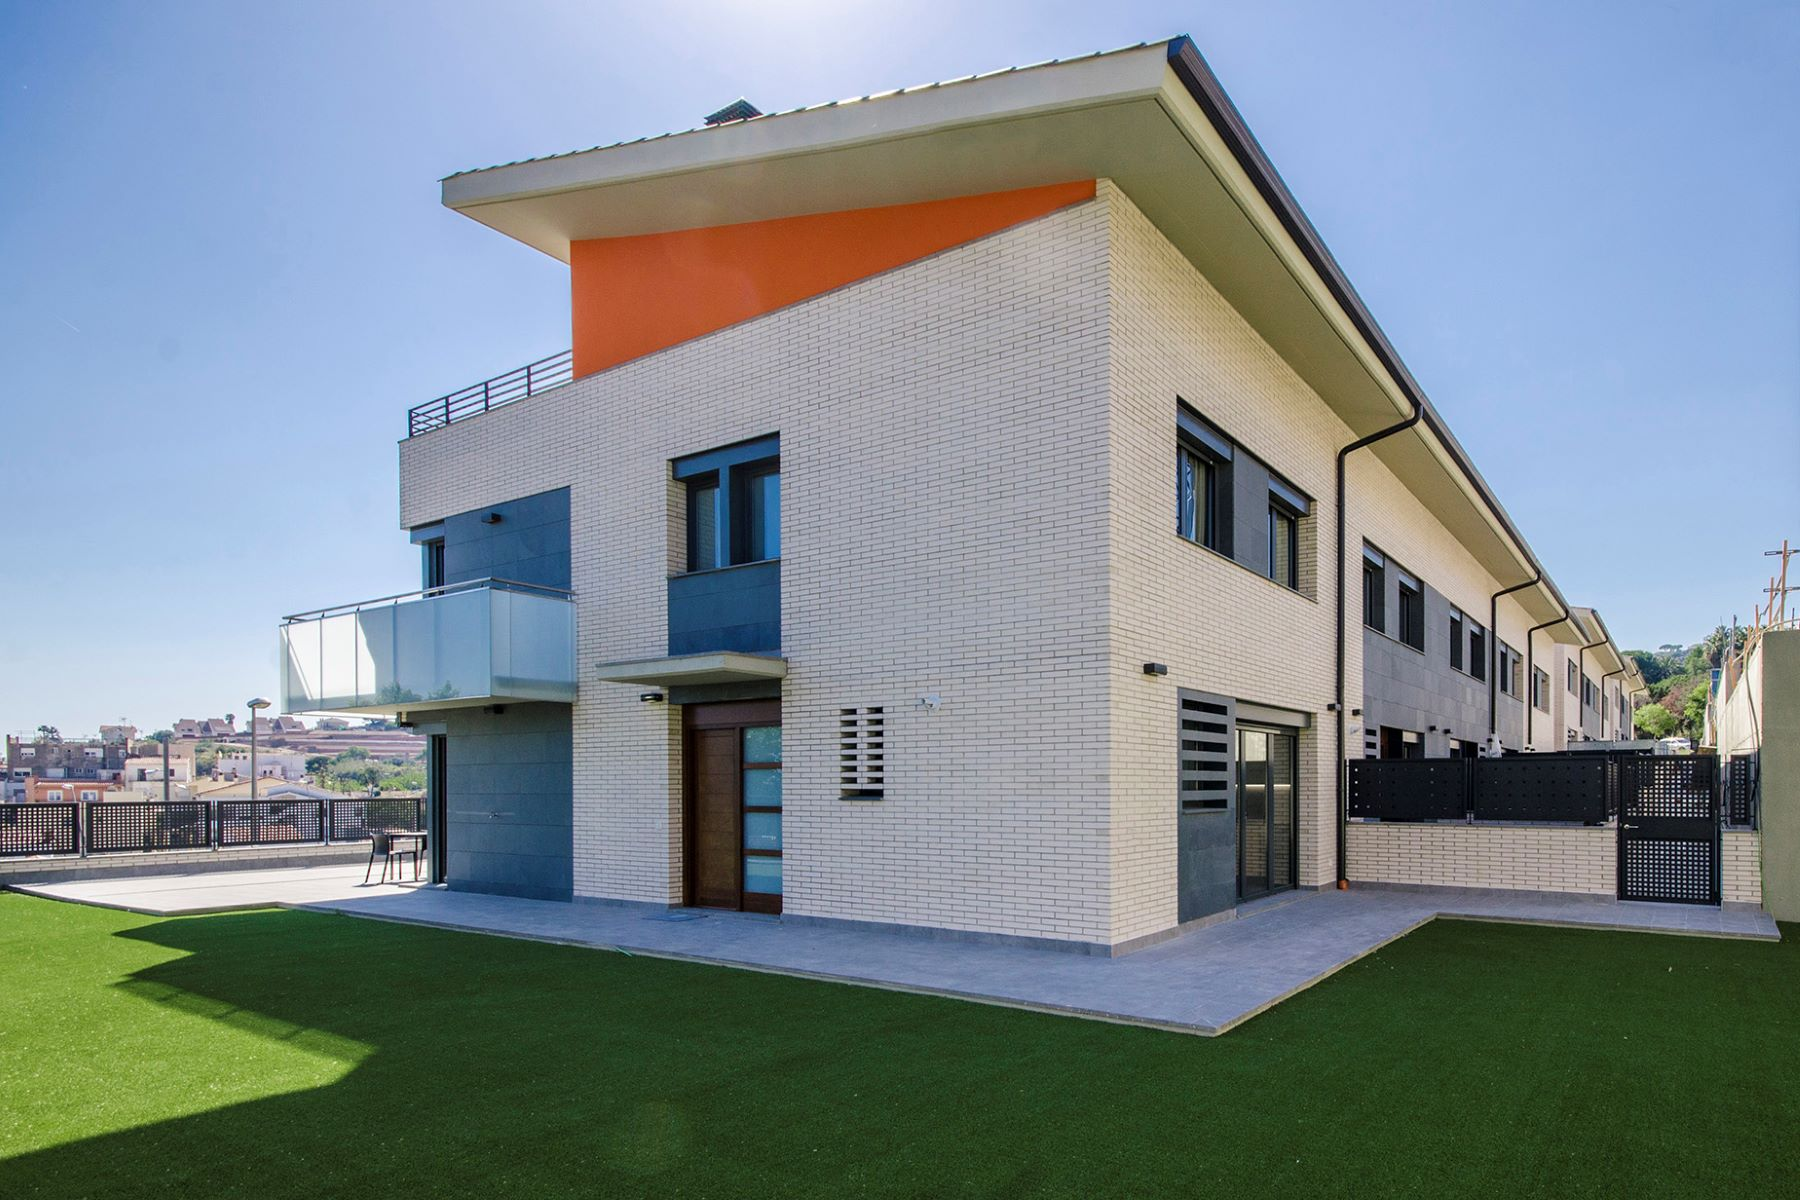 Single Family Home for Sale at New promotional offer in Teia with sea view Teia, Barcelona, 08329 Spain